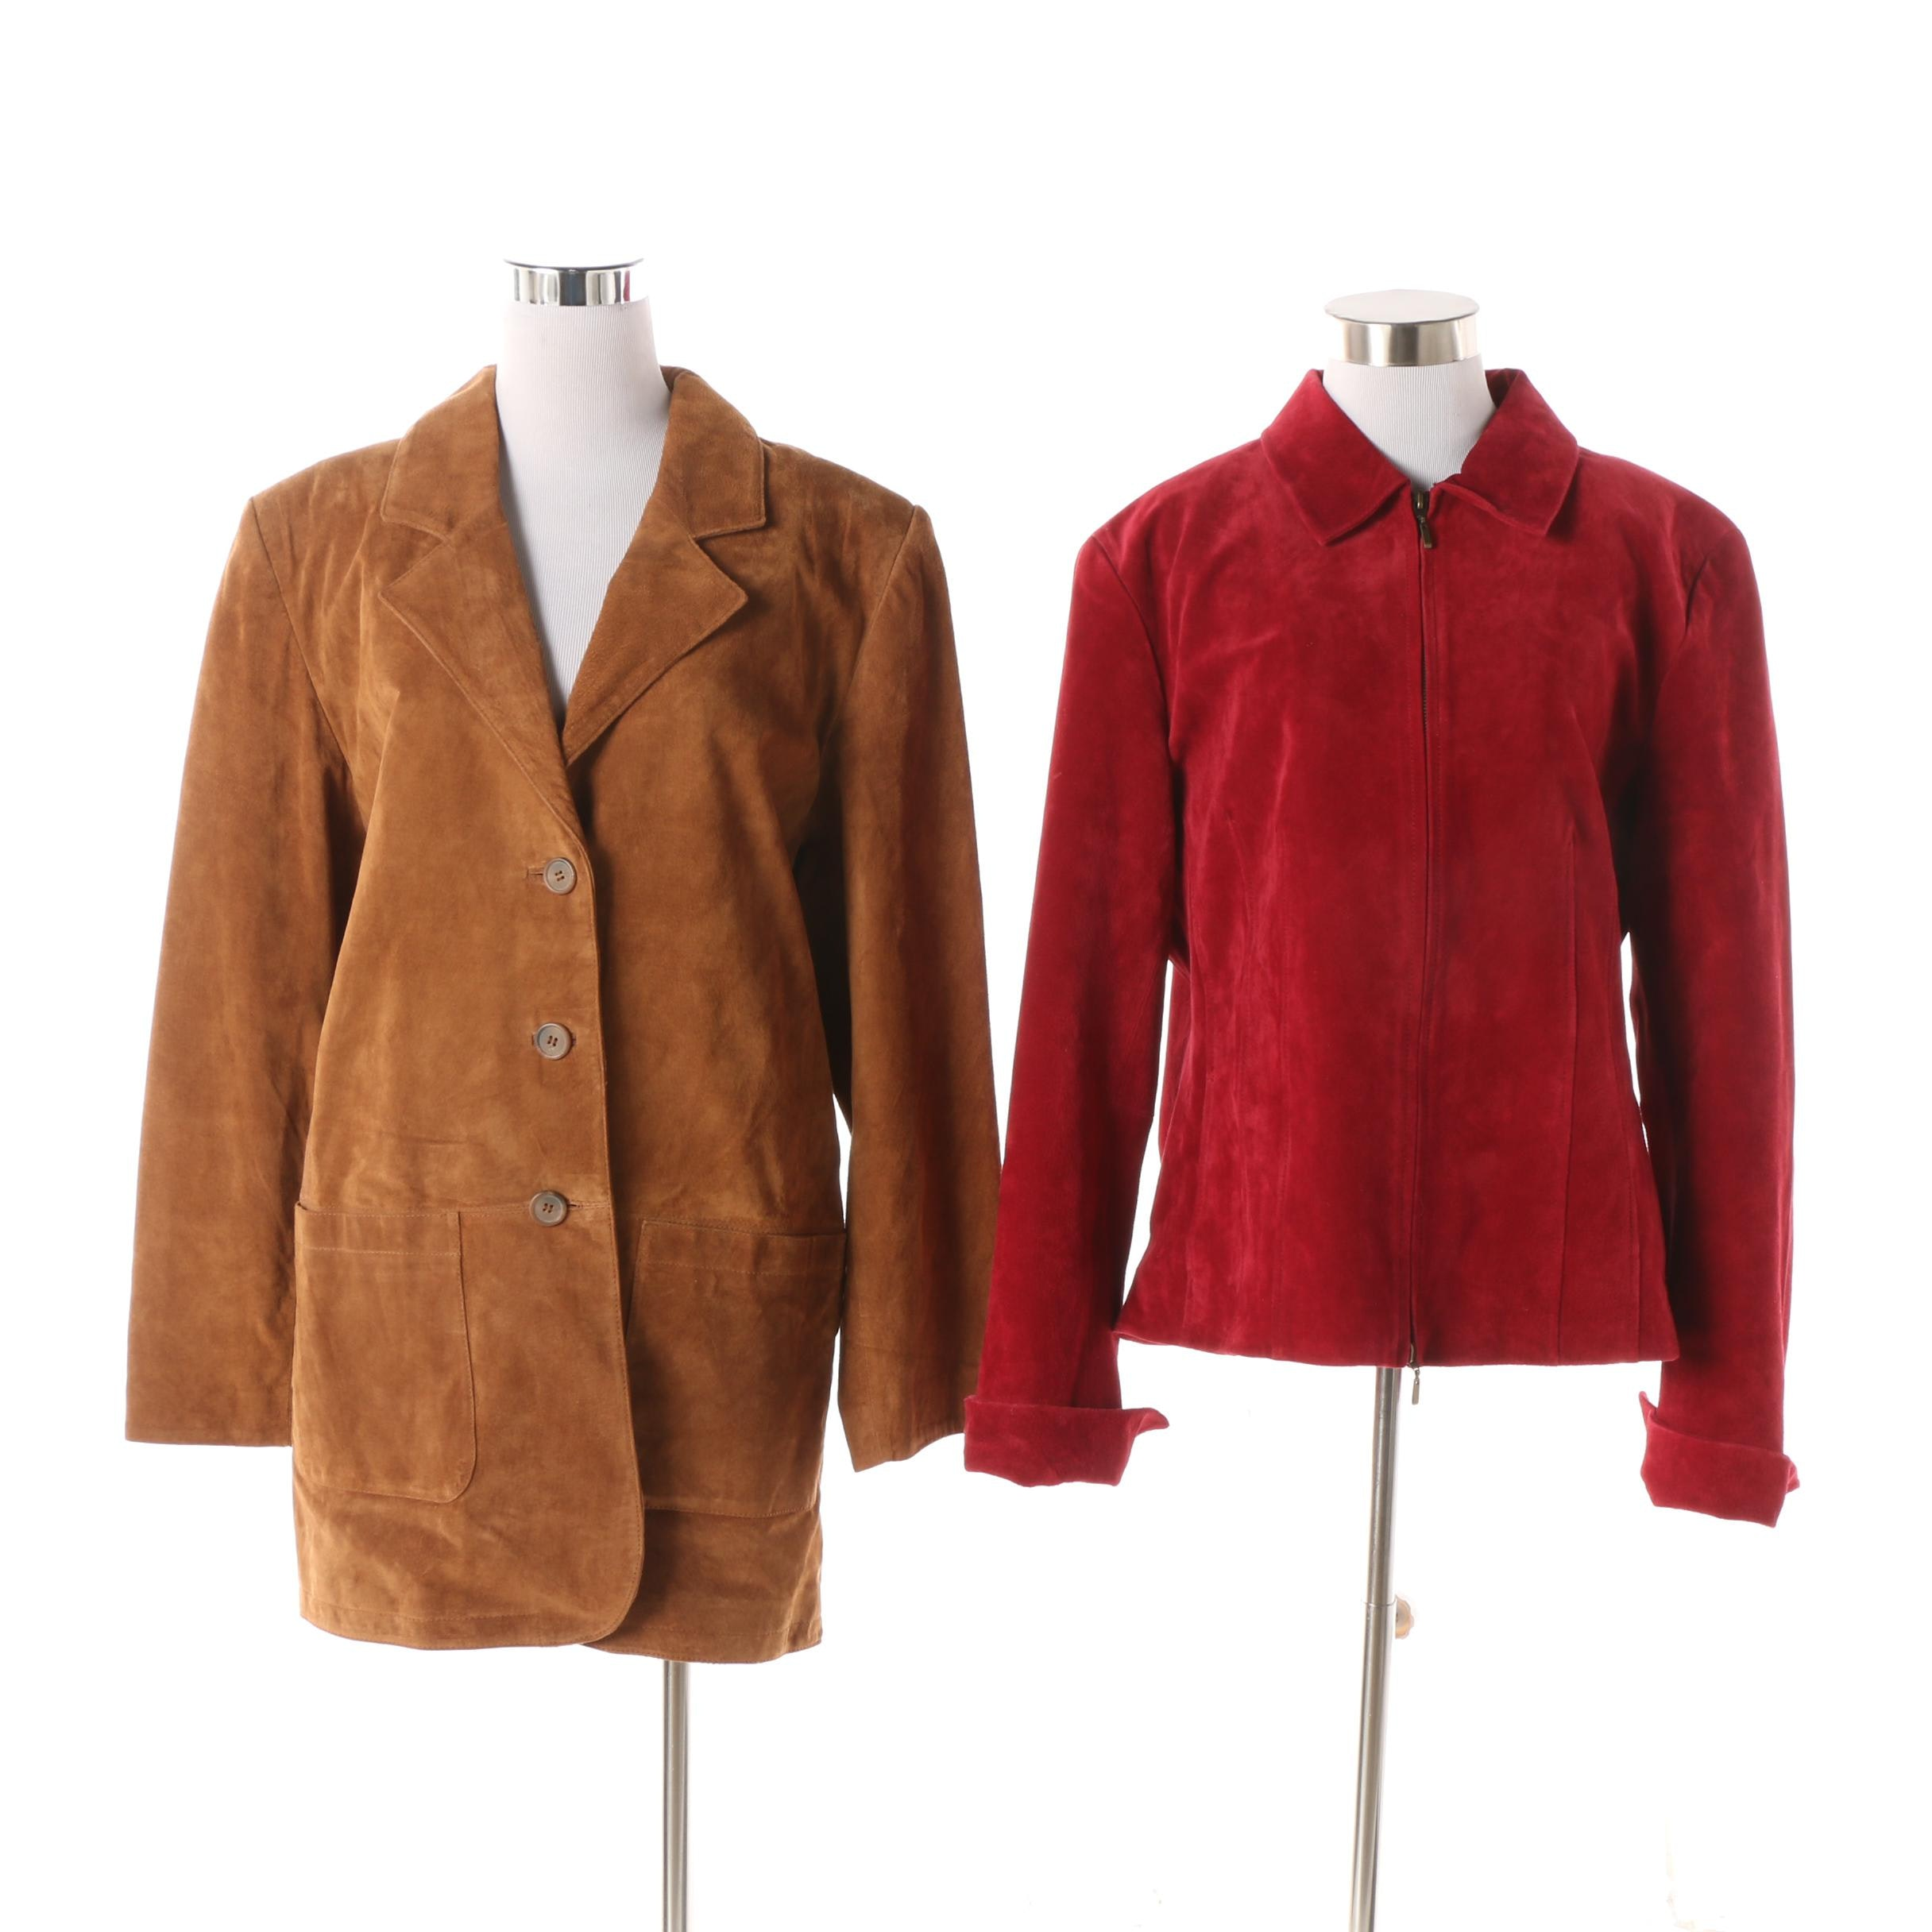 Women's Coldwater Creek and Margaret Godfrey Suede Jackets